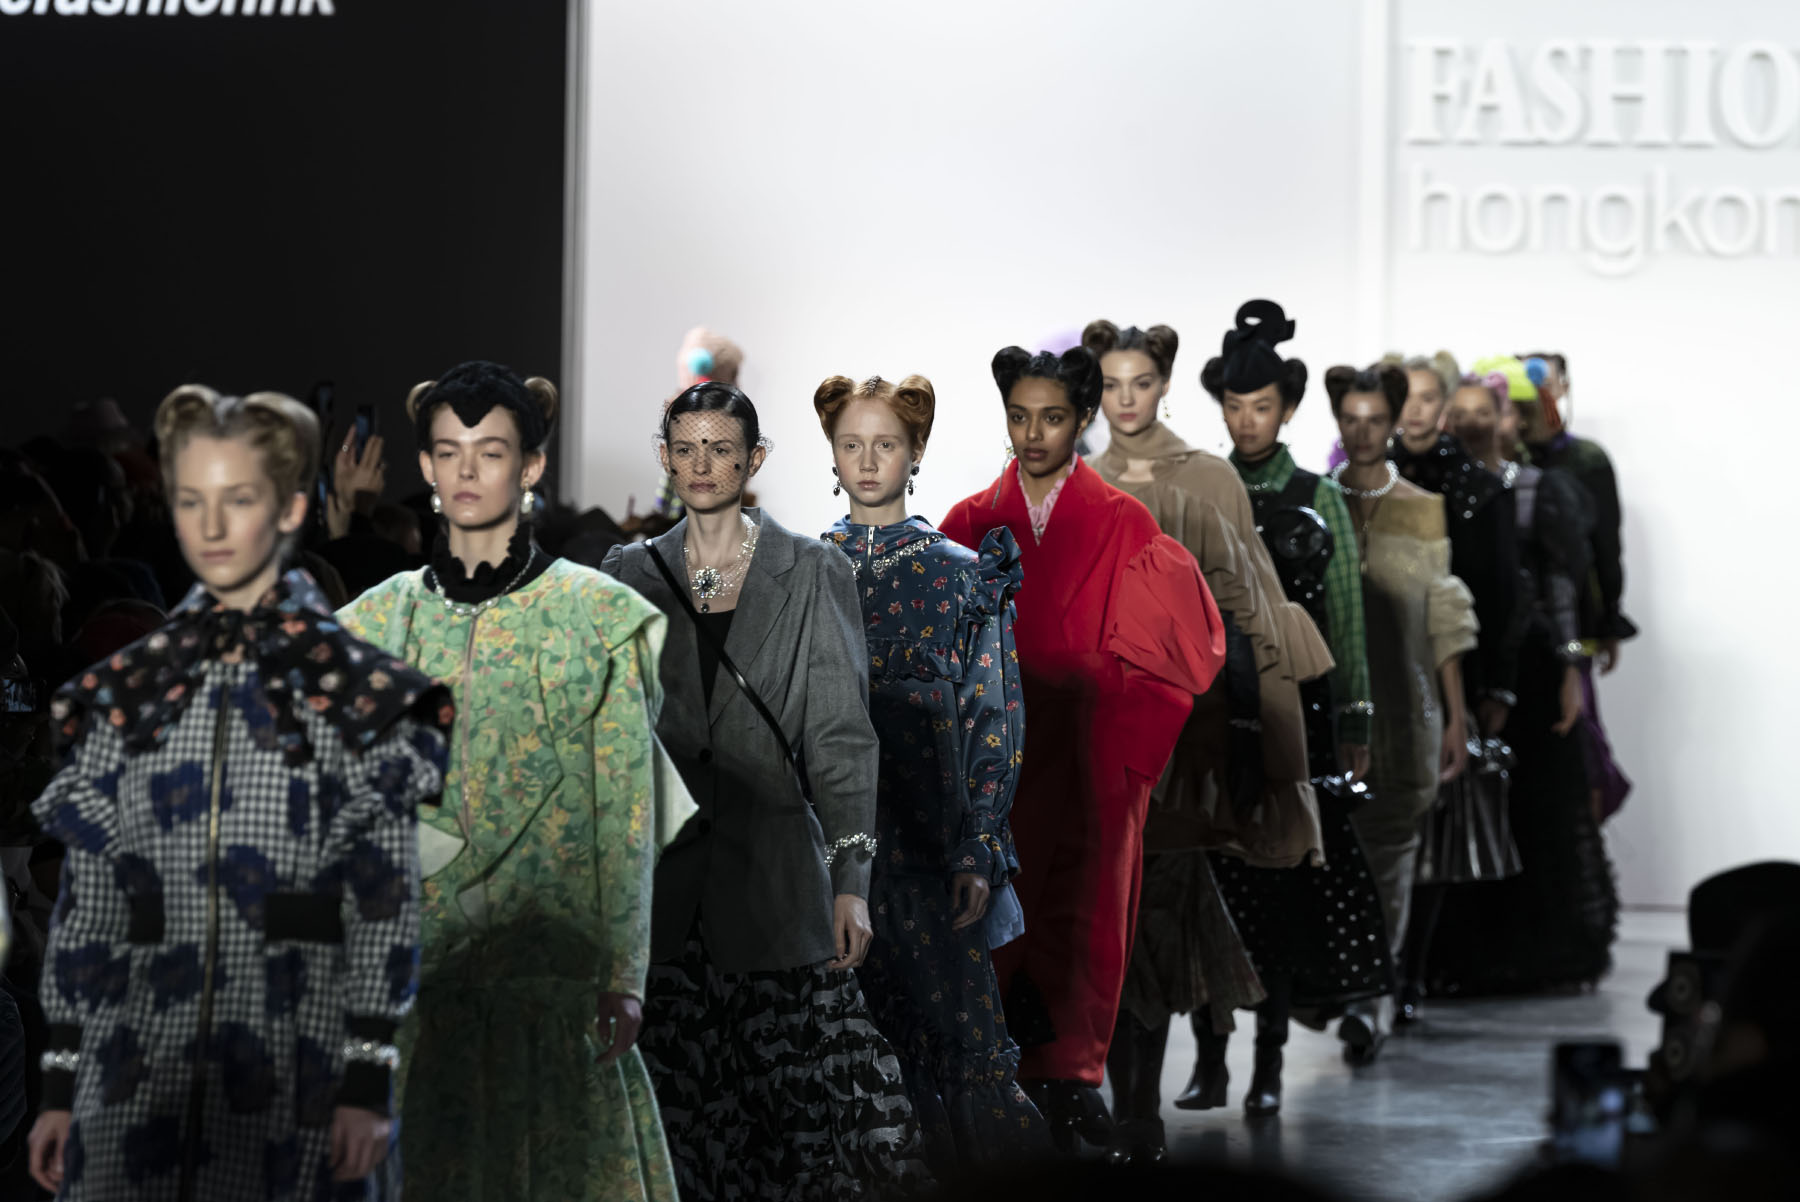 Fashion Hong Kong Fall Winter 2020 Runway Show